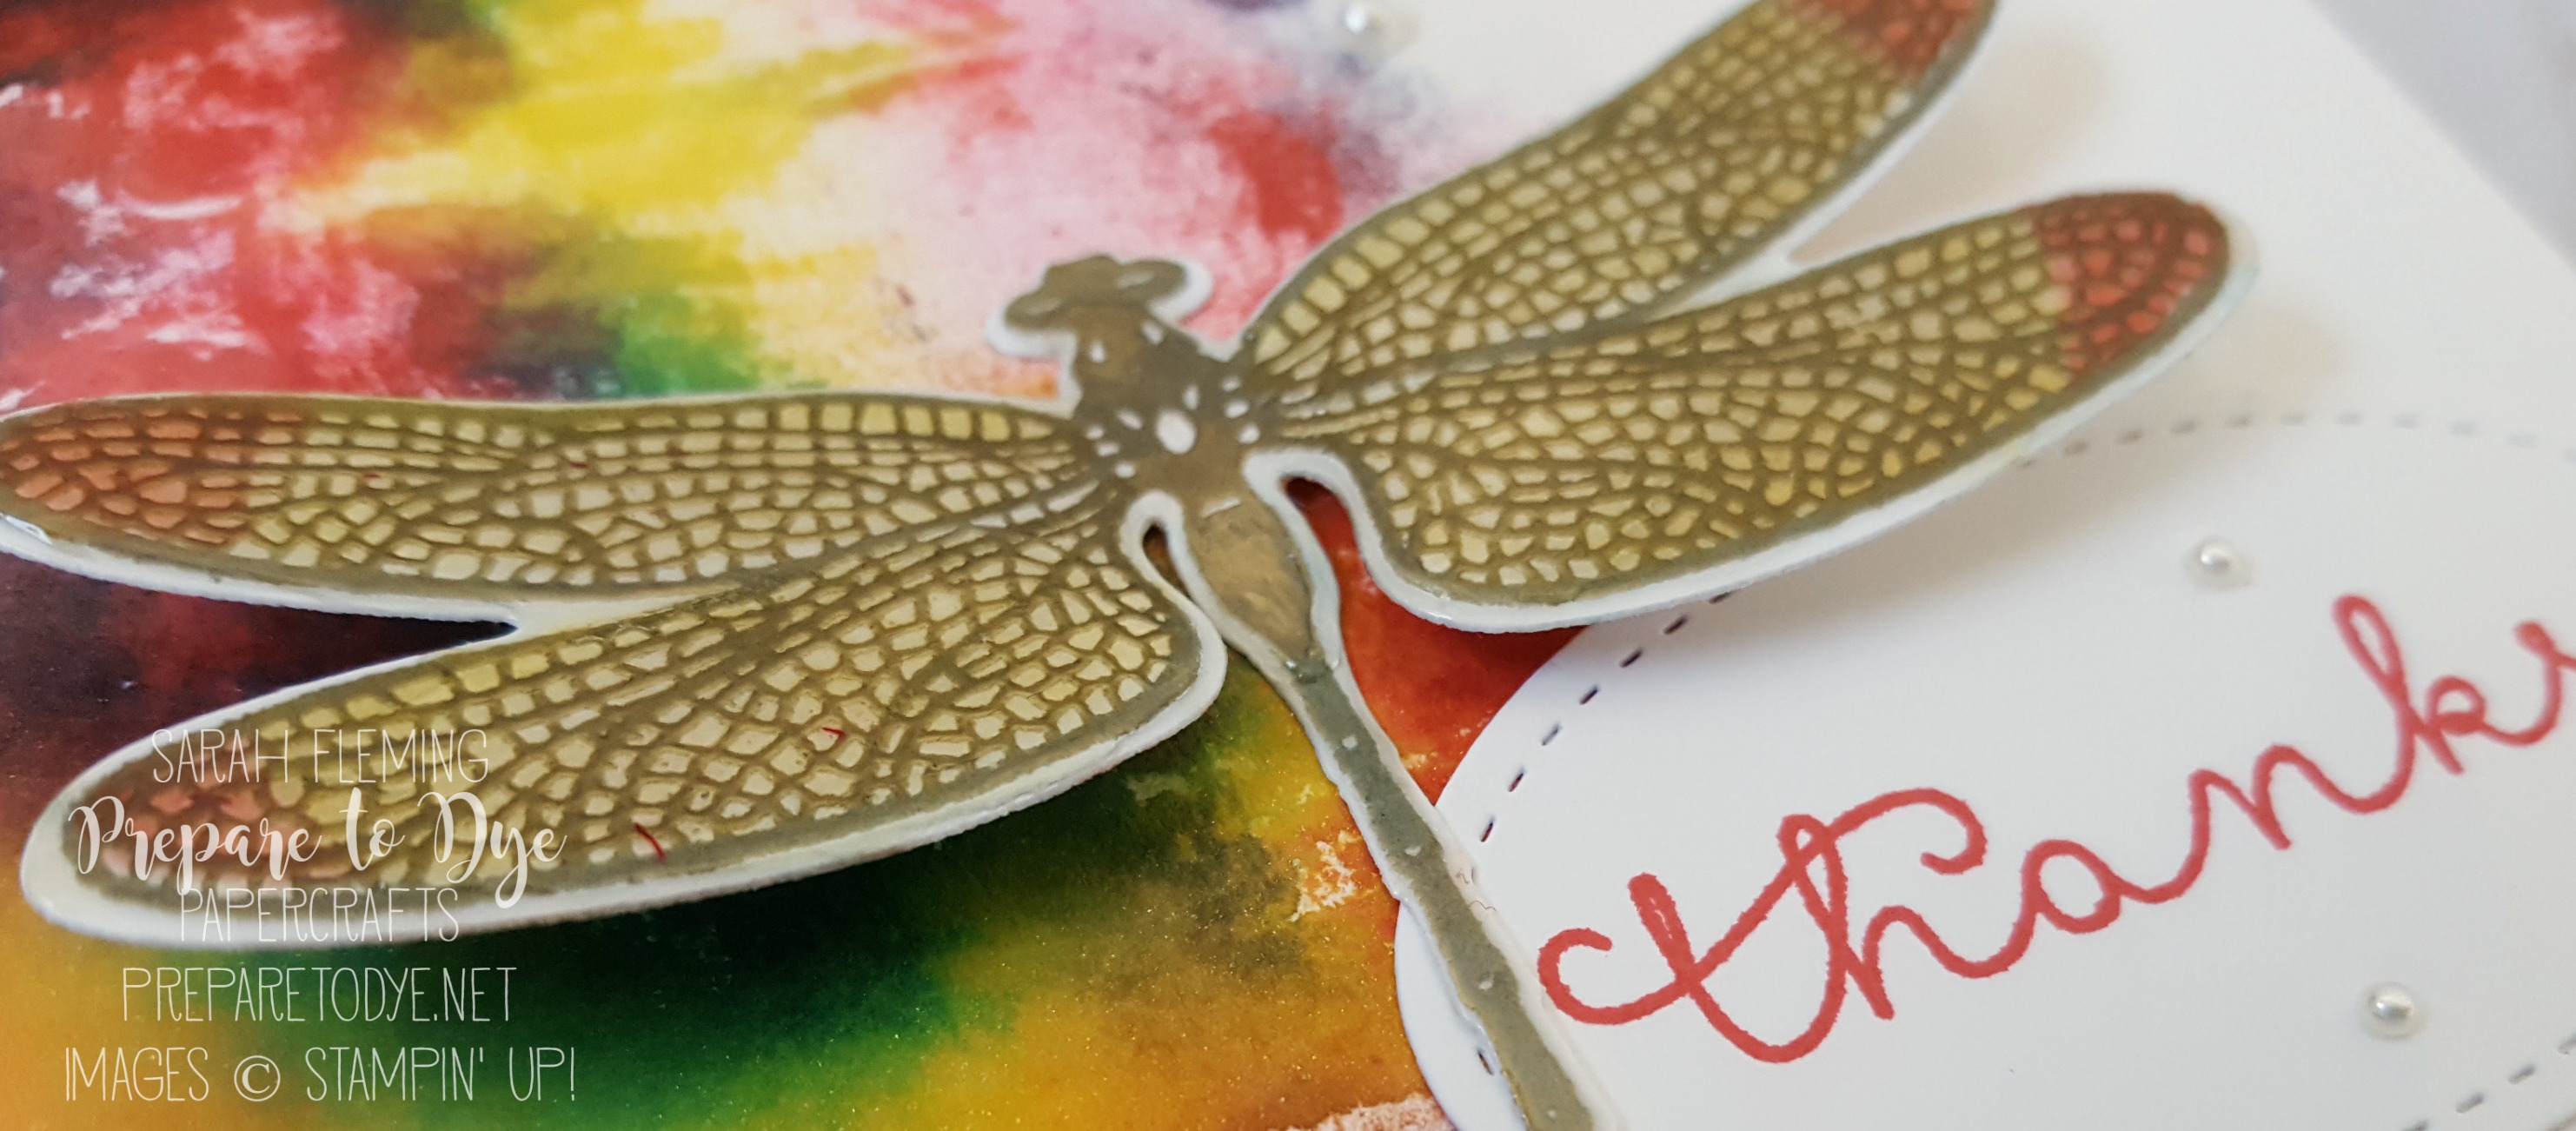 Stampin' Up! Dragonfly Dreams bundle with Baby Wipe Faux Batik Background - Sarah Fleming - Prepare to Dye Papercrafts - International Blog Highlight winners